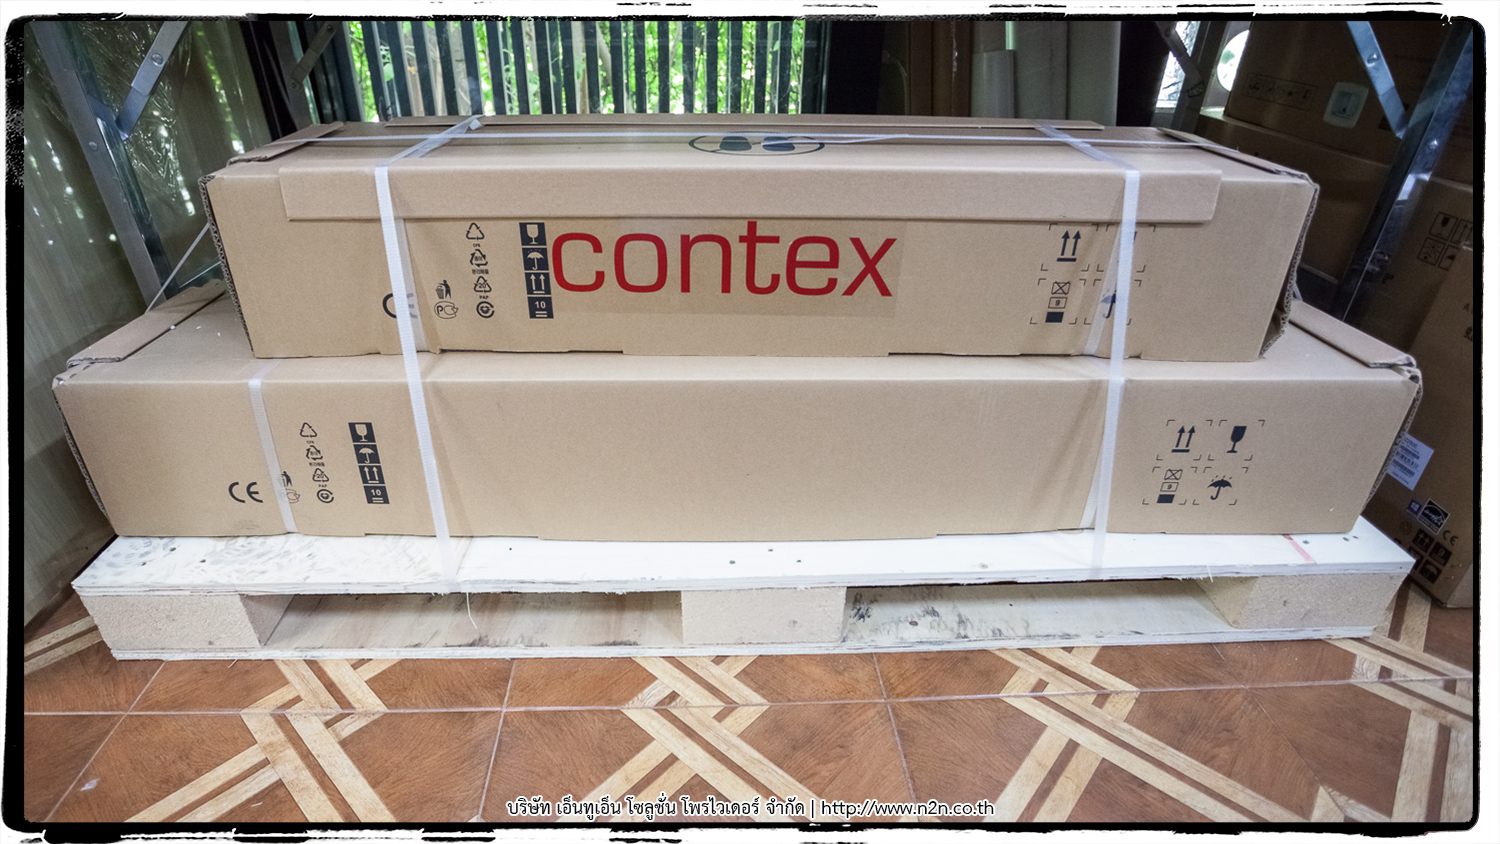 N2NSP_News_Contex_SDONEPlus24_unbox_20170811_02